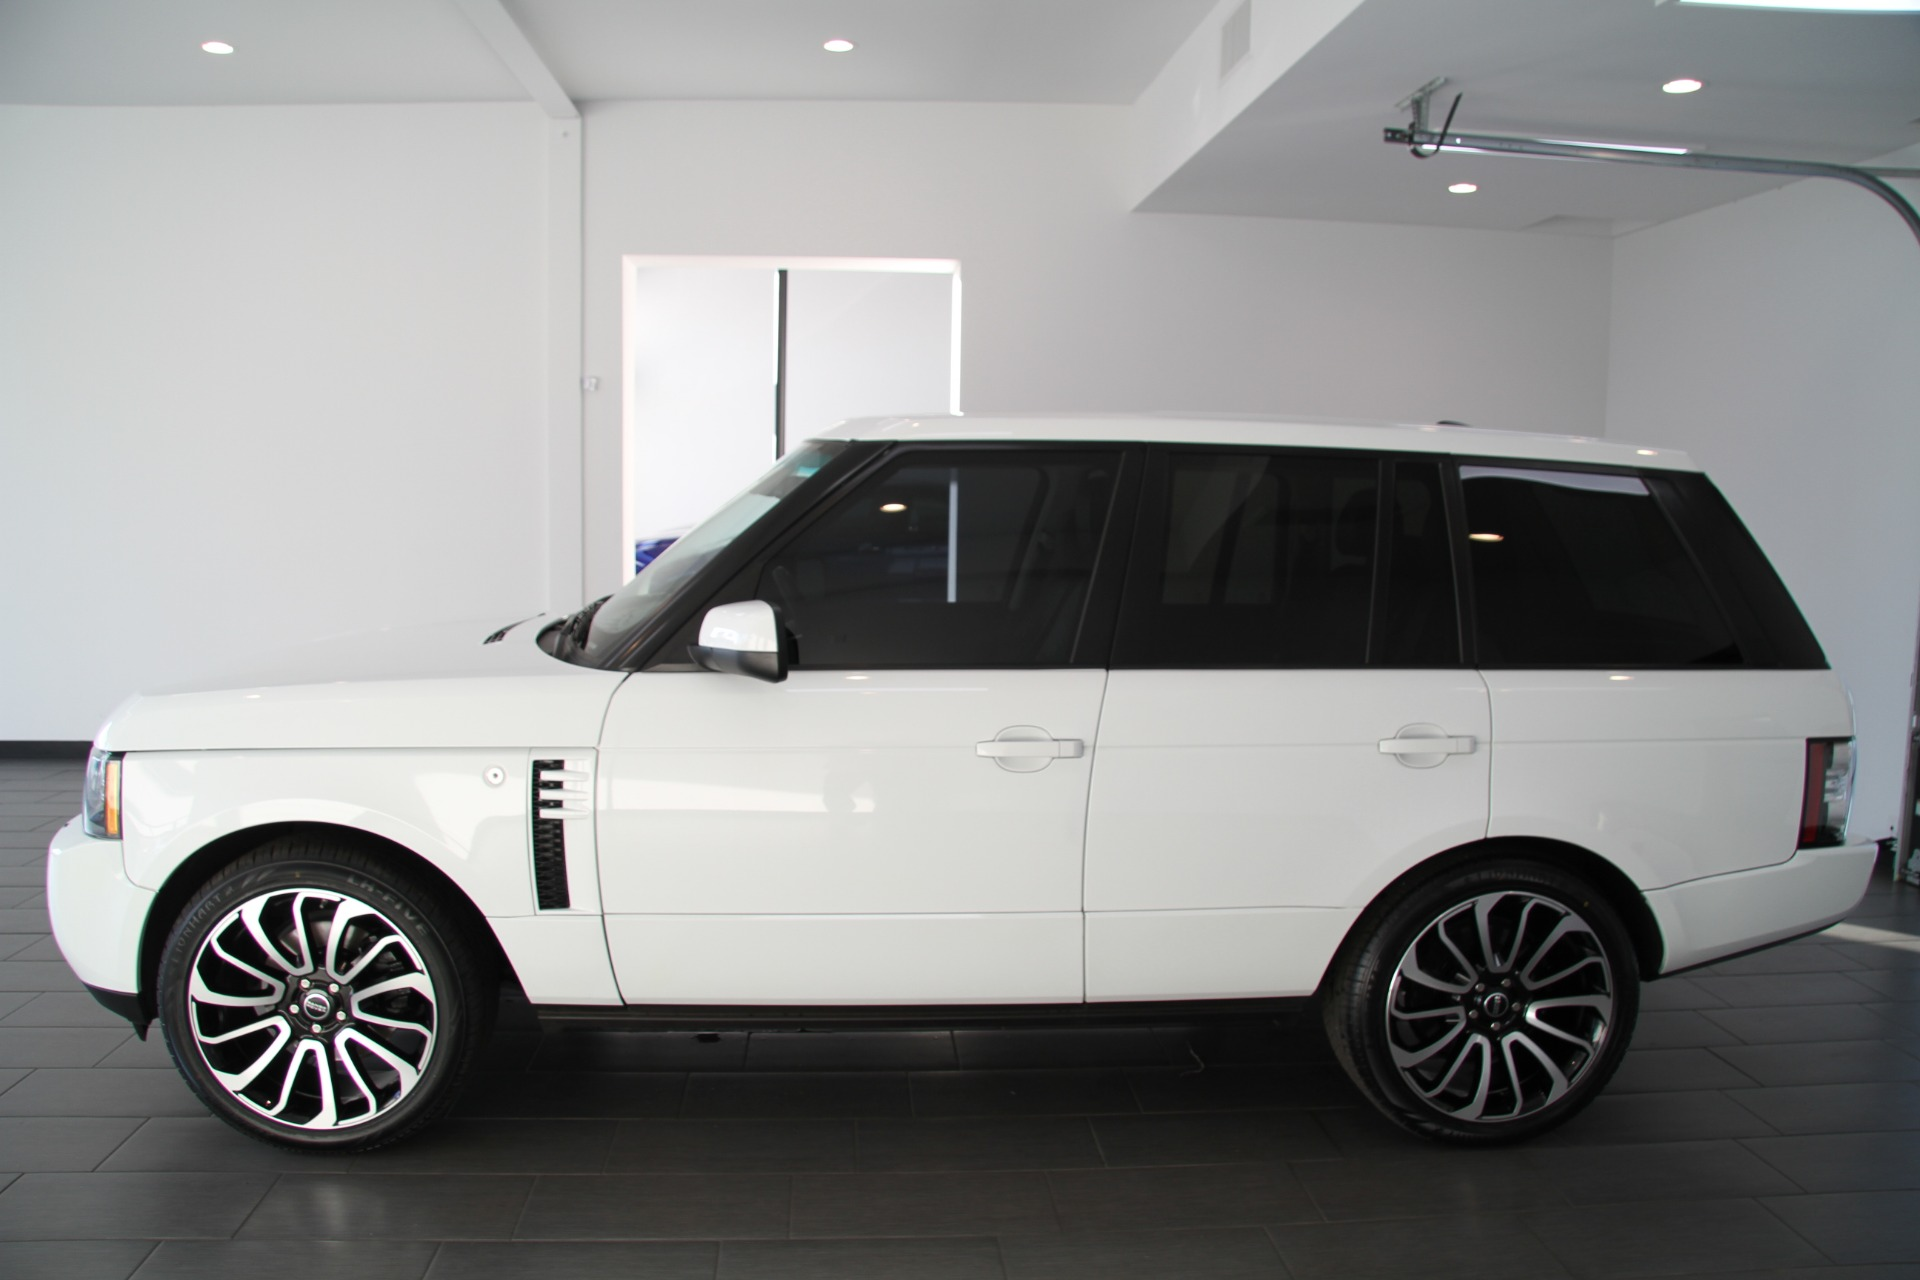 2012 Land Rover Range Rover Hse Stock 5810a For Sale Near Redondo Beach Ca Ca Land Rover Dealer